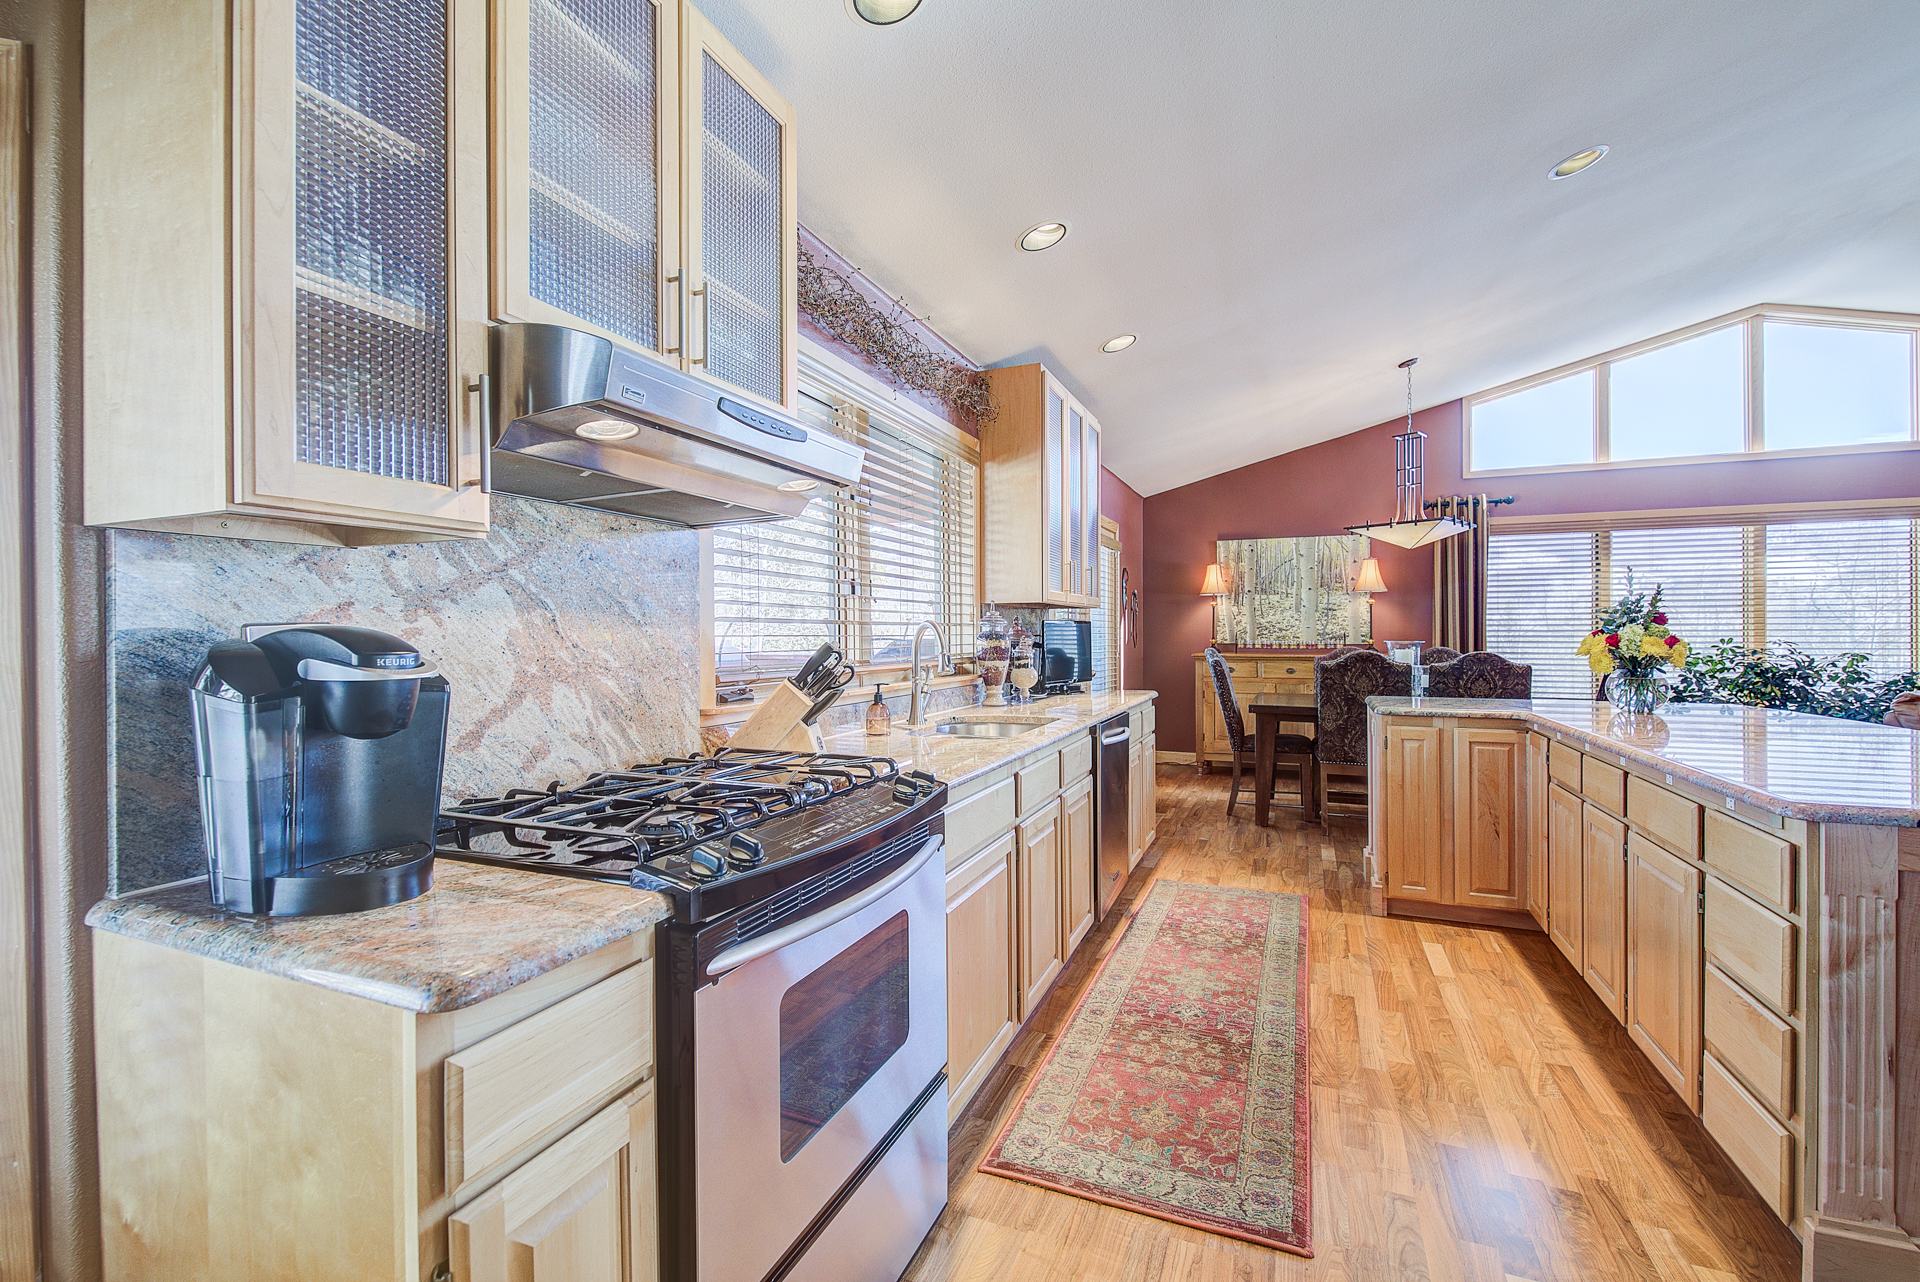 Stainless steel appliances and granite surfaces in the gourmet kitchen